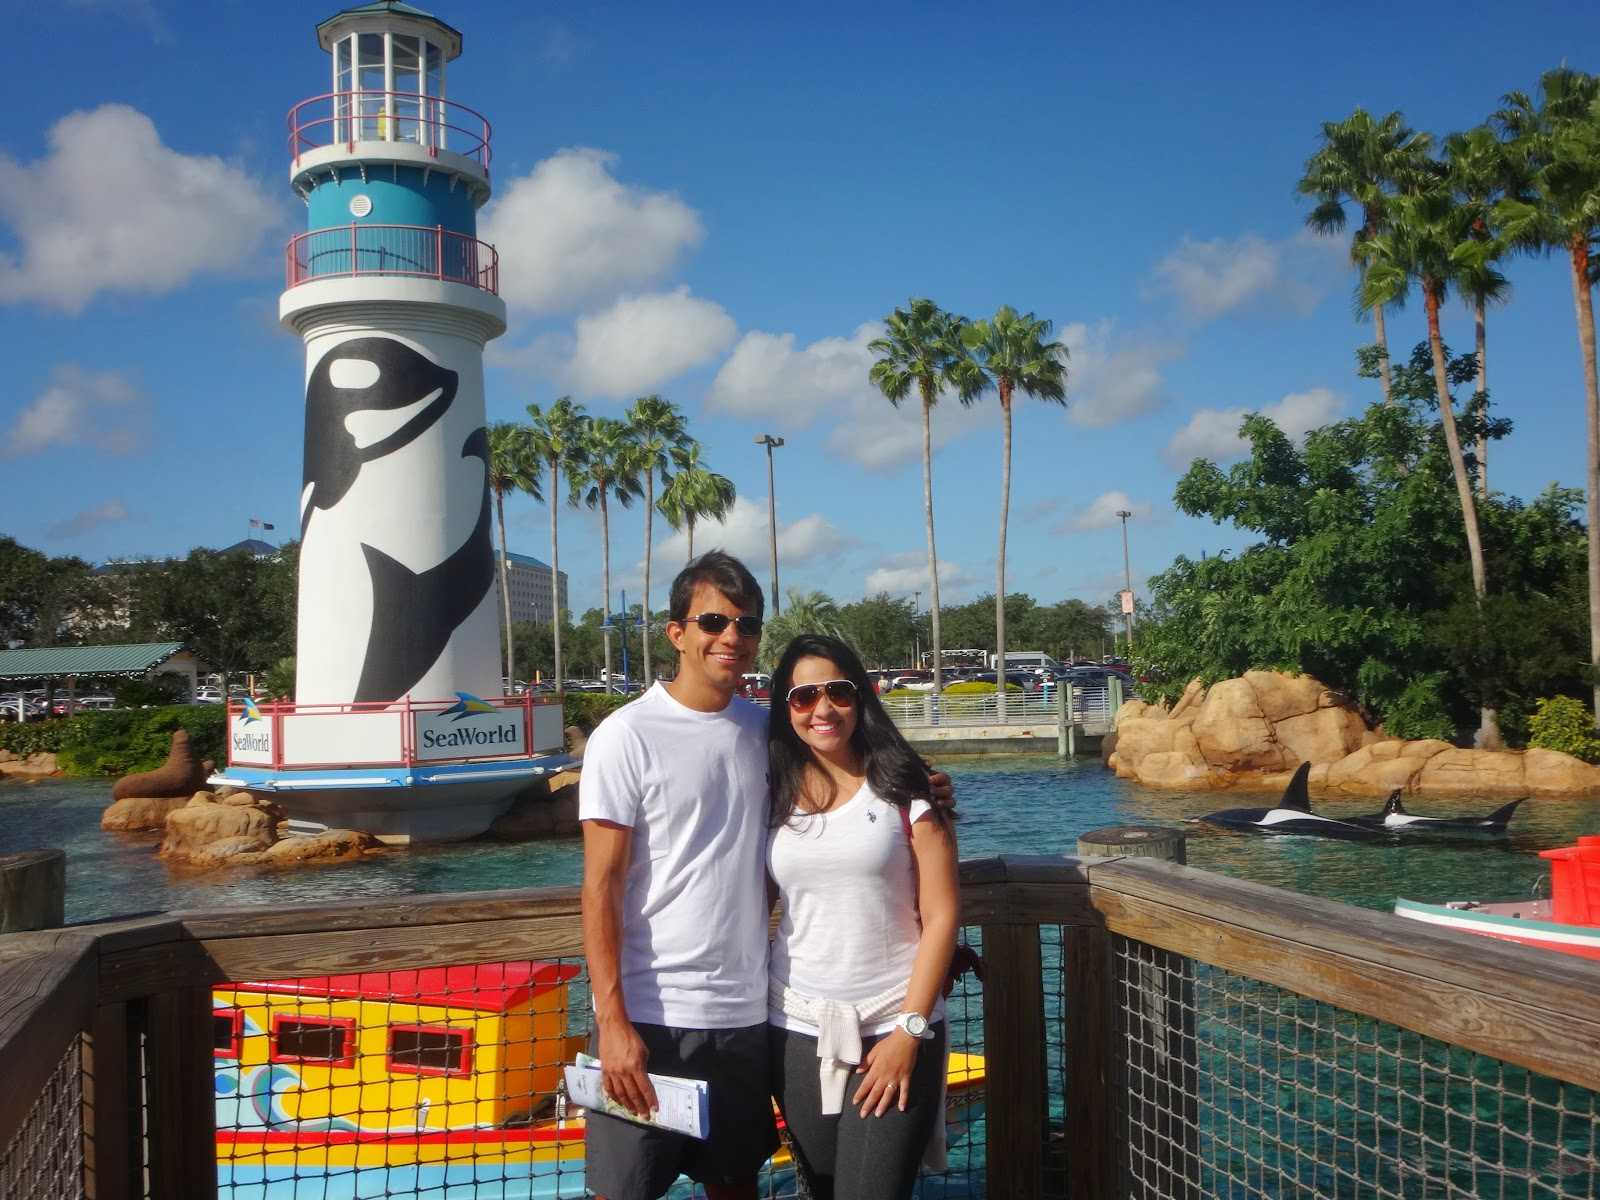 Parque sea world - orlando, florida